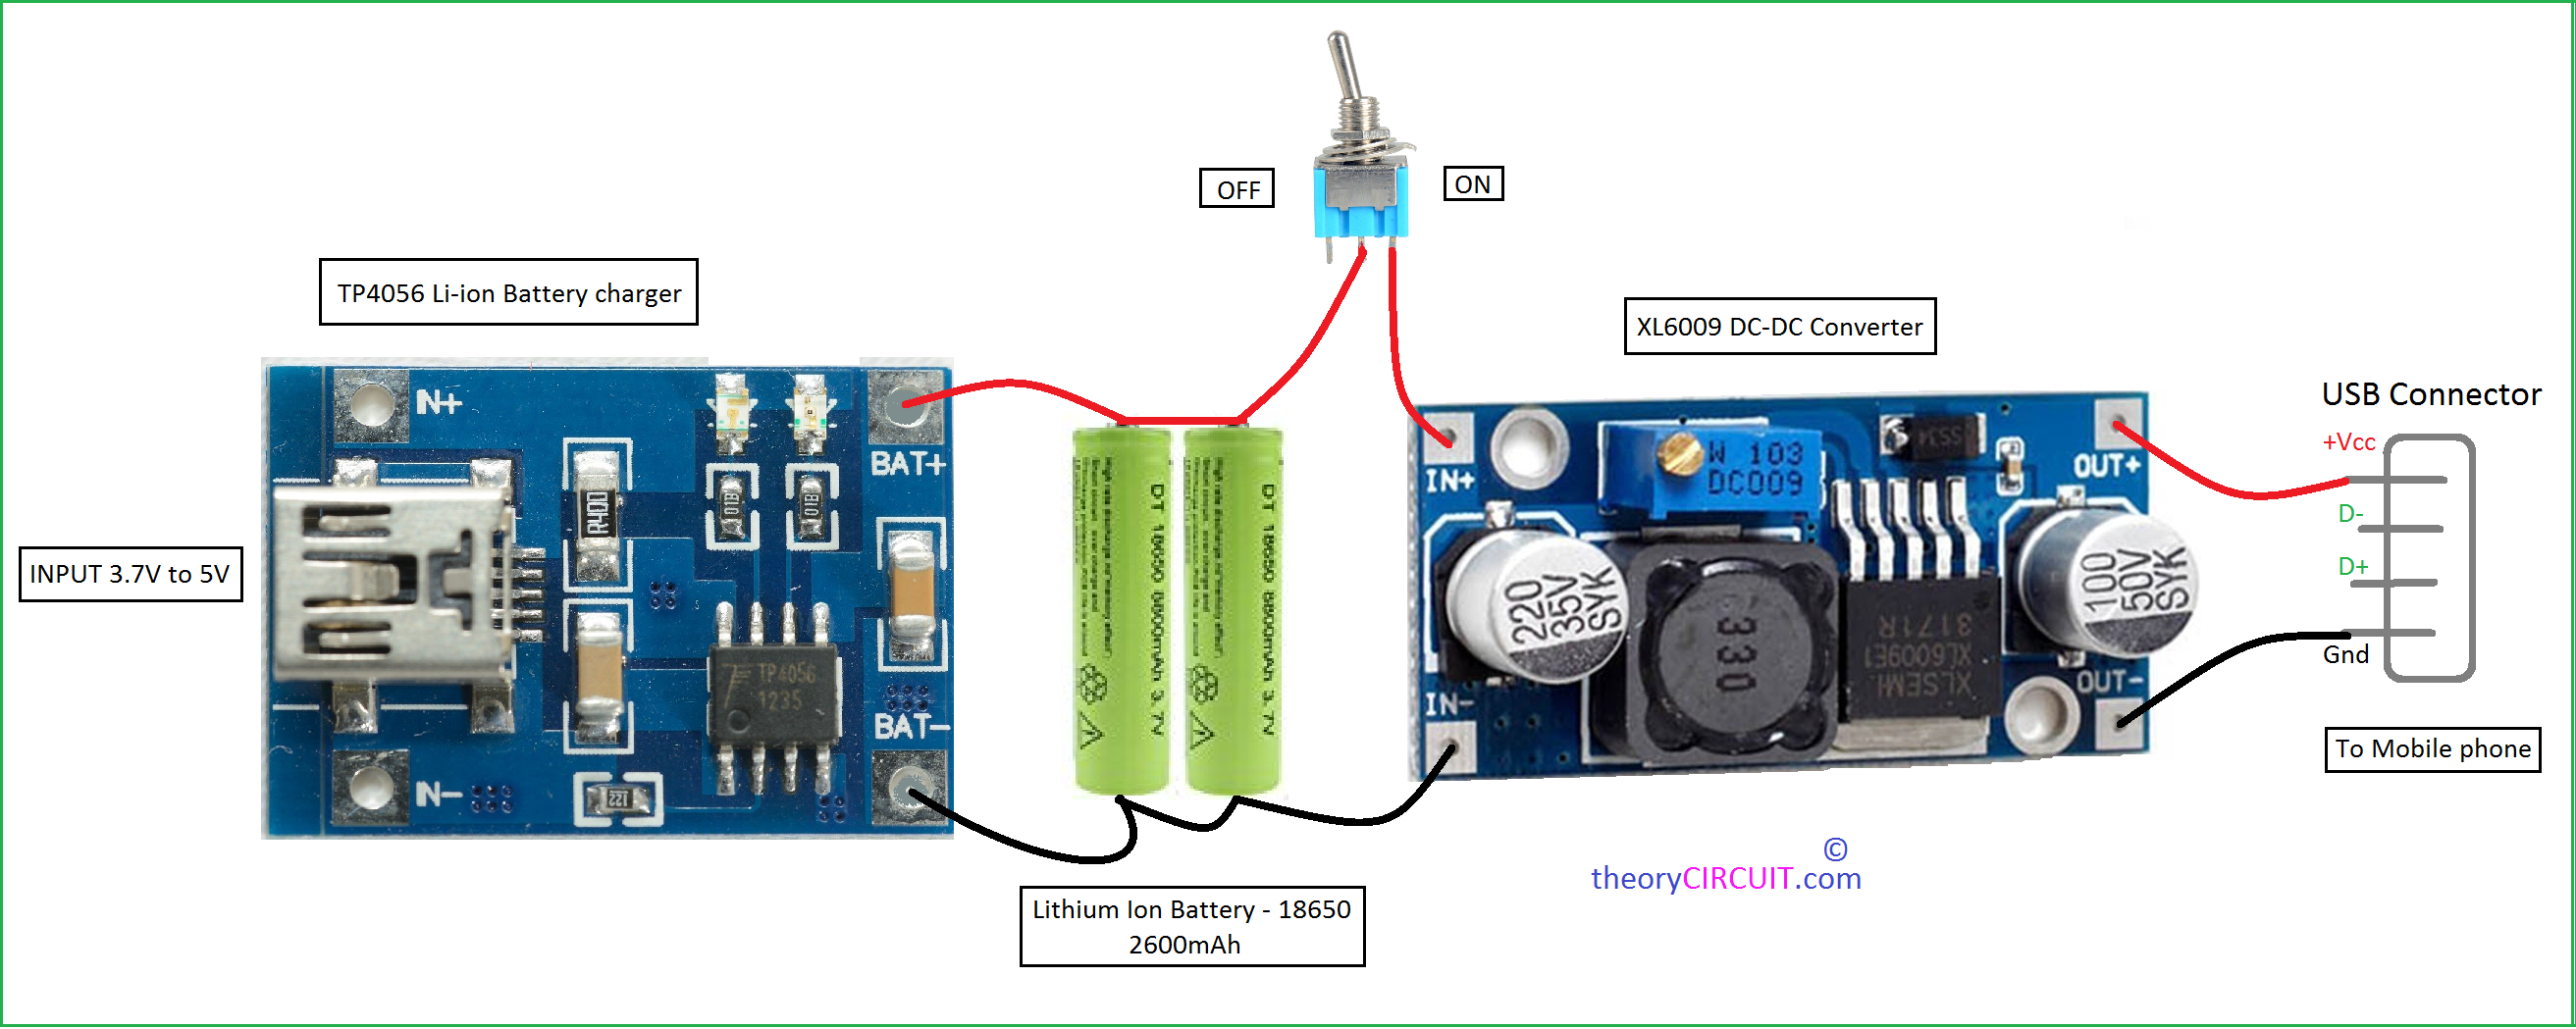 Power Bank Circuit For Smartphones How To Build Usb Powered Mobile Phone Battery Charger